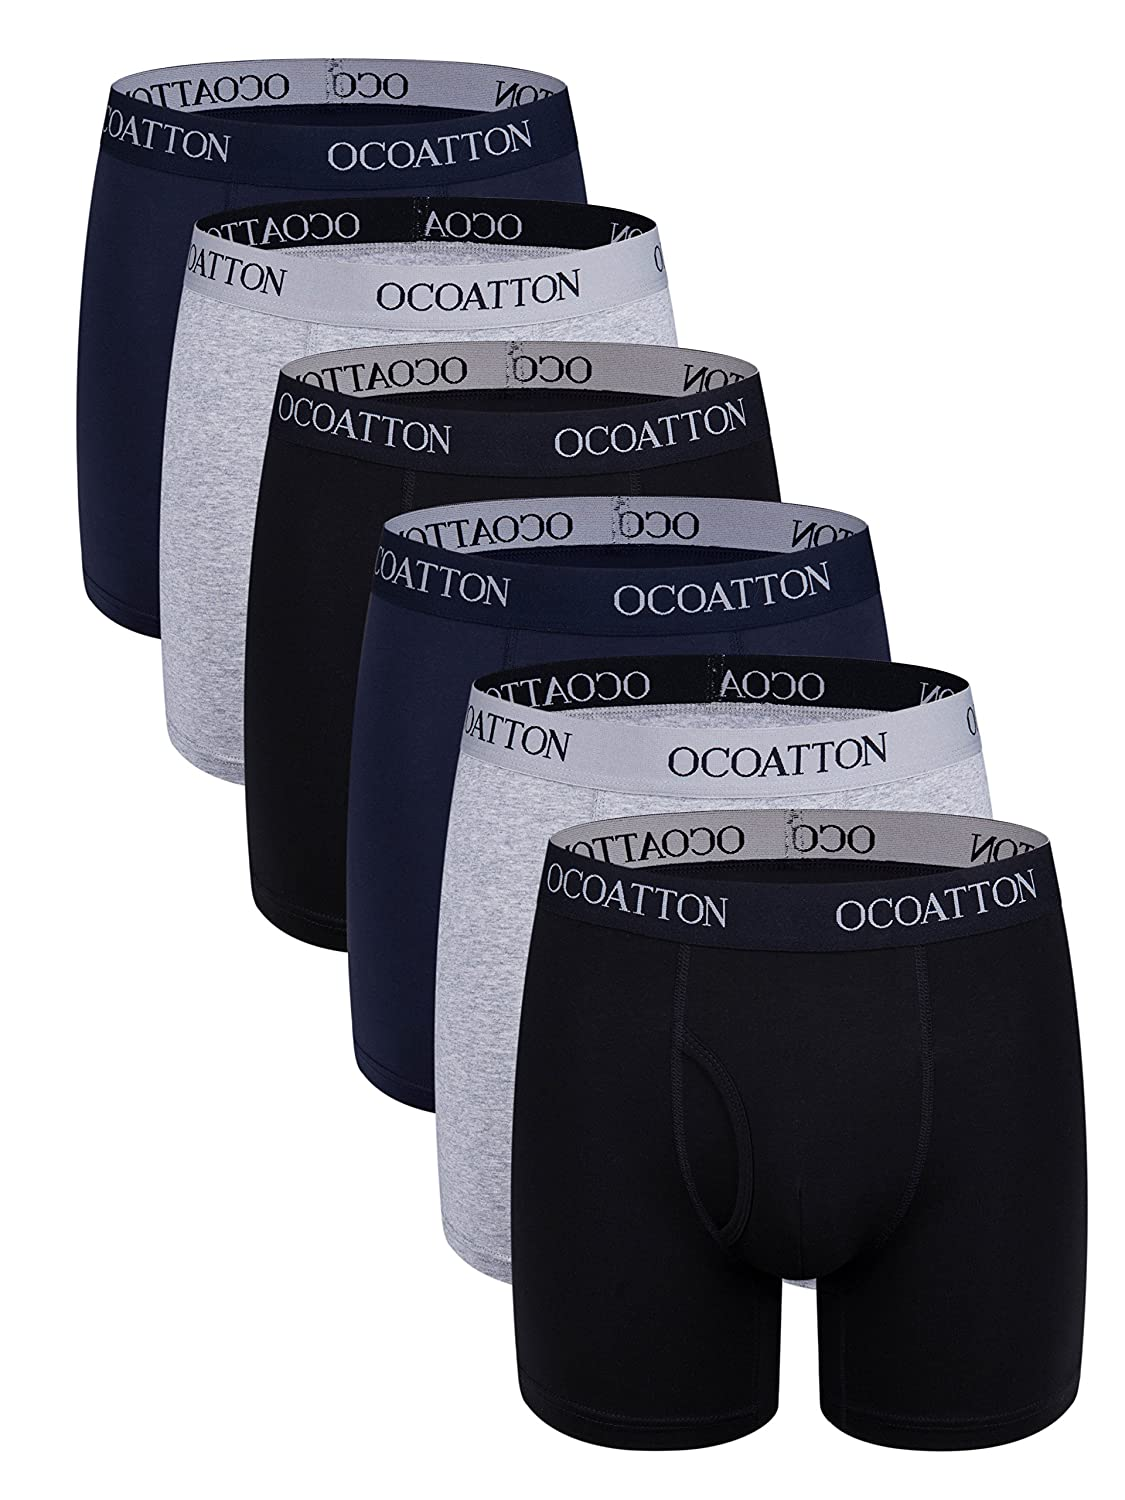 OCOATTON Men's Underwear Combed Cotton Boxer Briefs with Front Fly 6-Pack